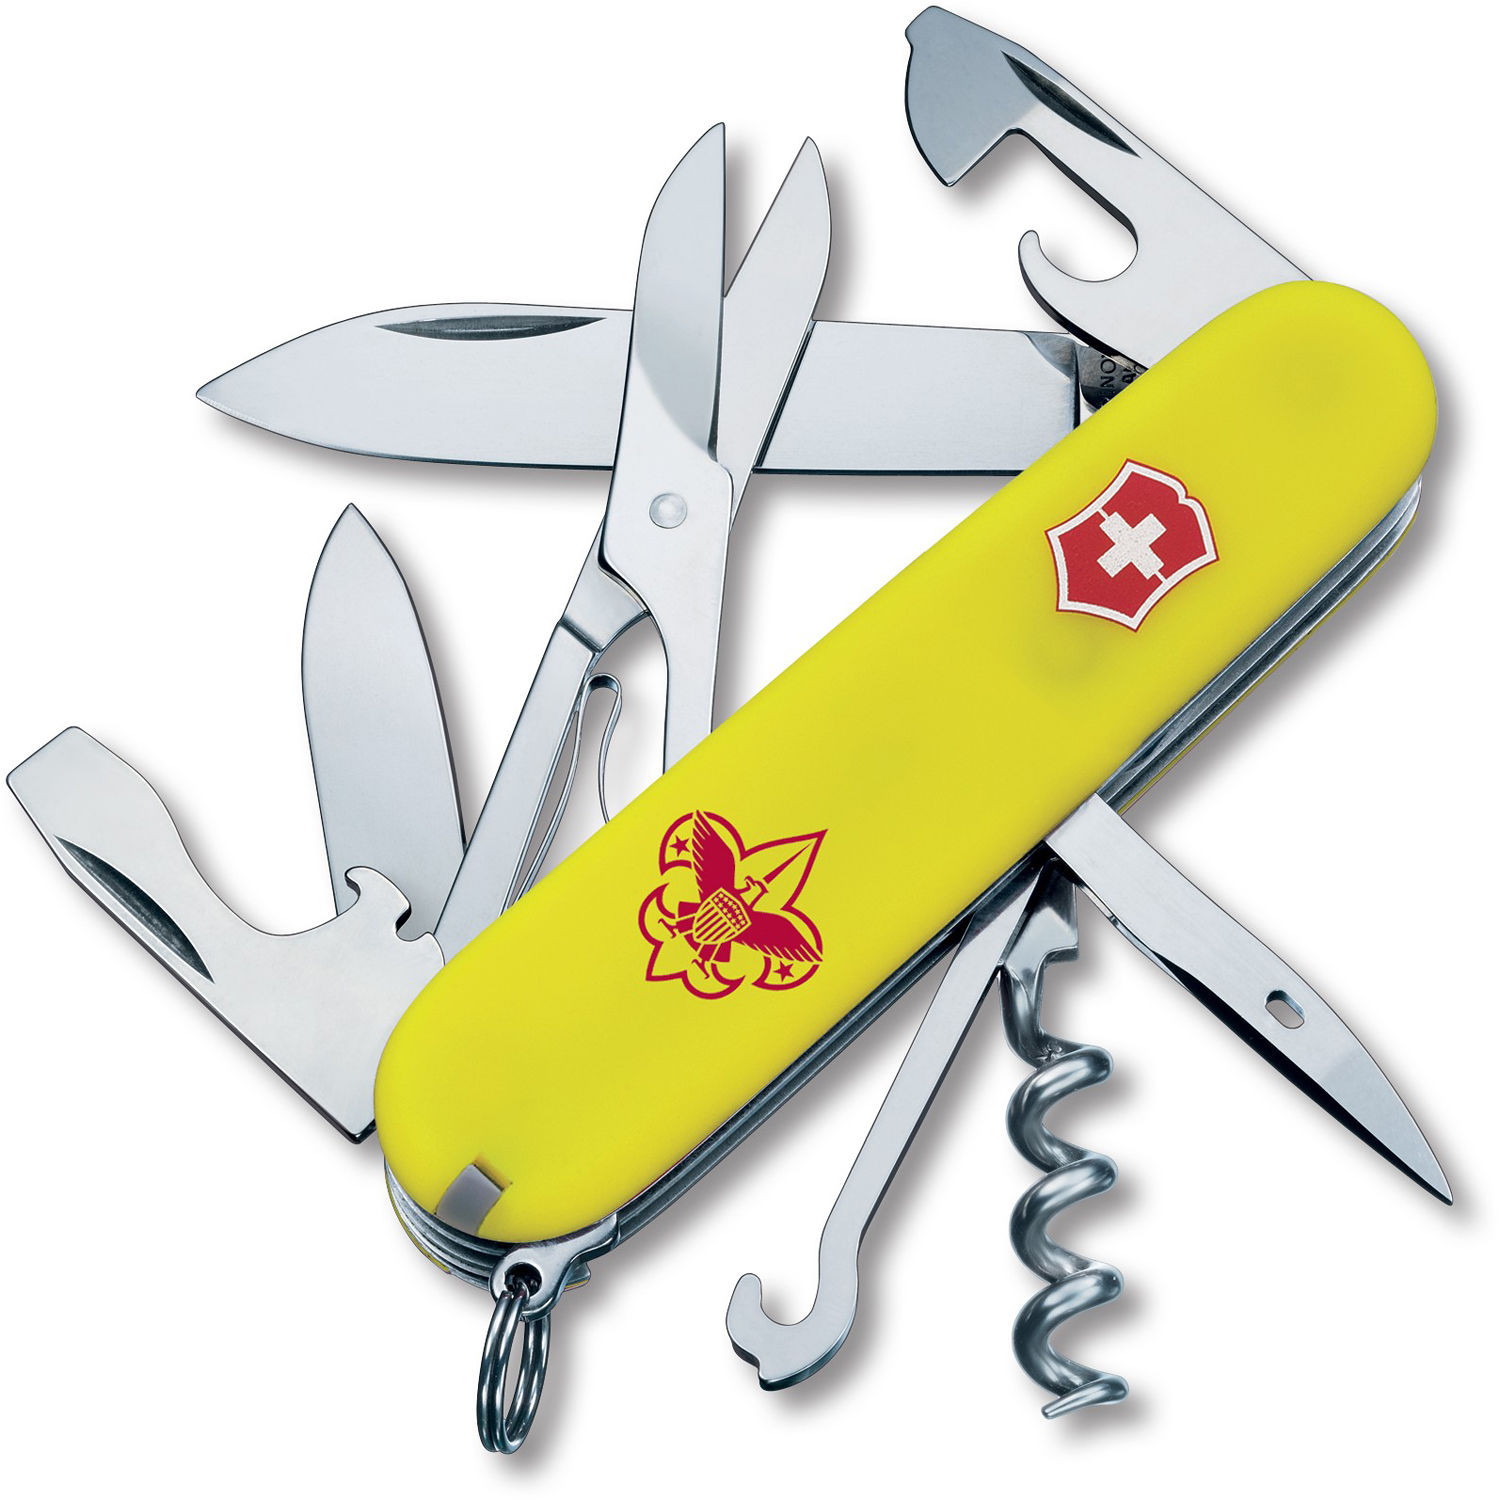 Victorinox Climber Pocket Knife (Stayglow Yellow, Boy Scouts of America  Edition, Clamshell Packaging)